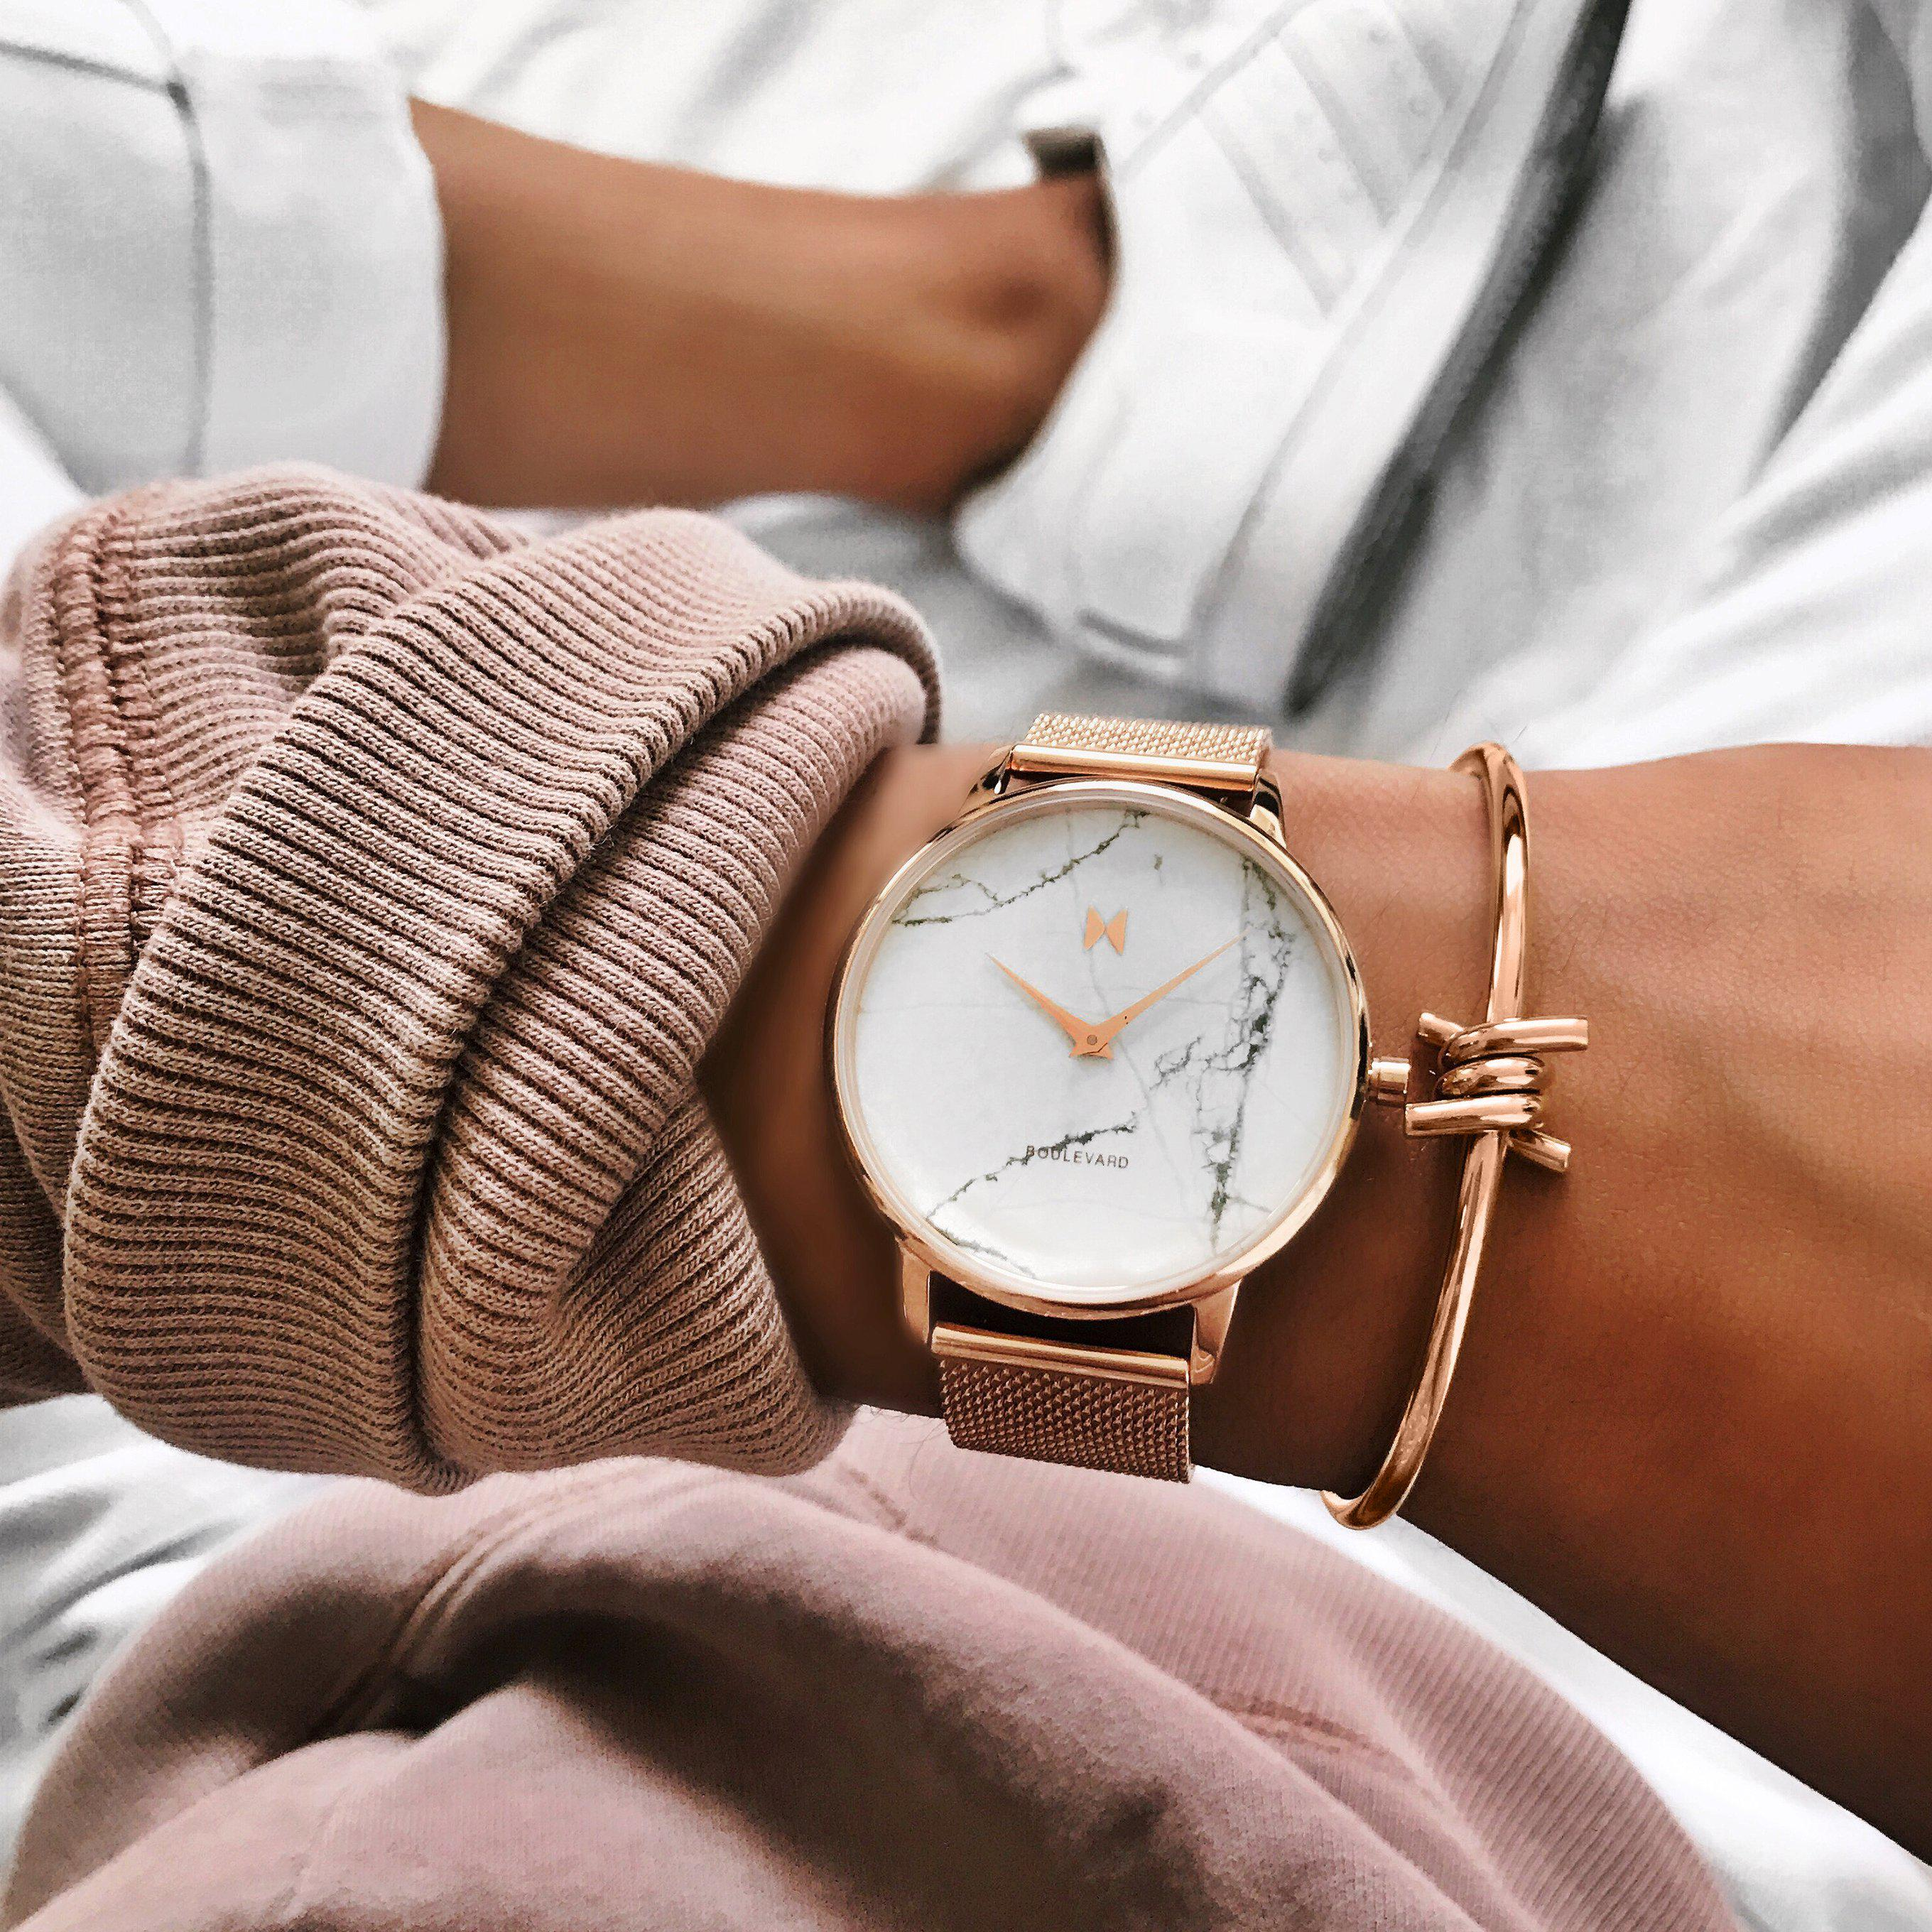 watch you and with your styles a one style free in gold peach of up is rose worldwide s our shipping many collection the watches women leather pin could just